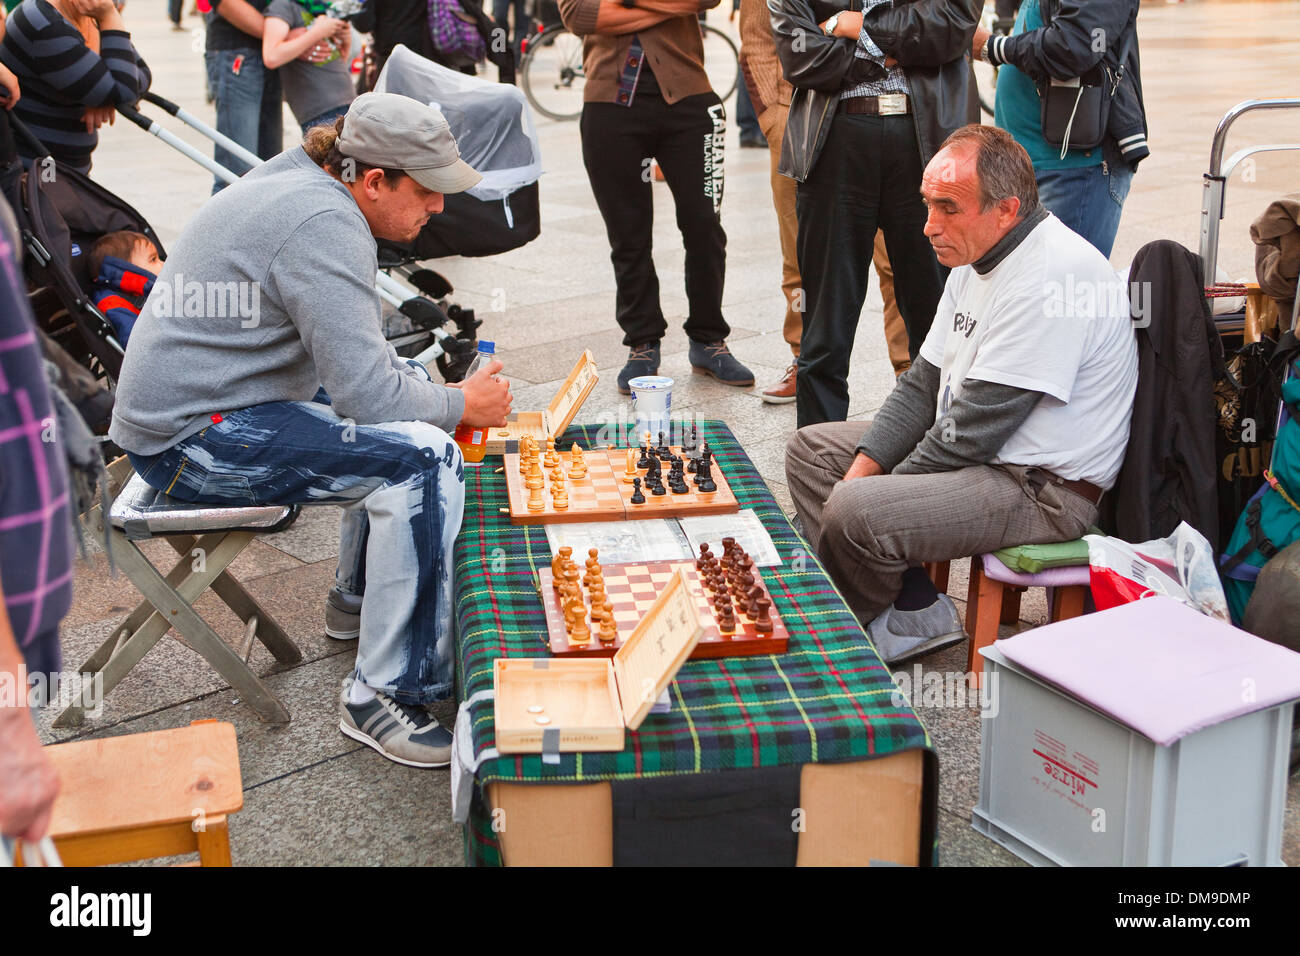 Men playing chess in the streets of old Cologne. - Stock Image